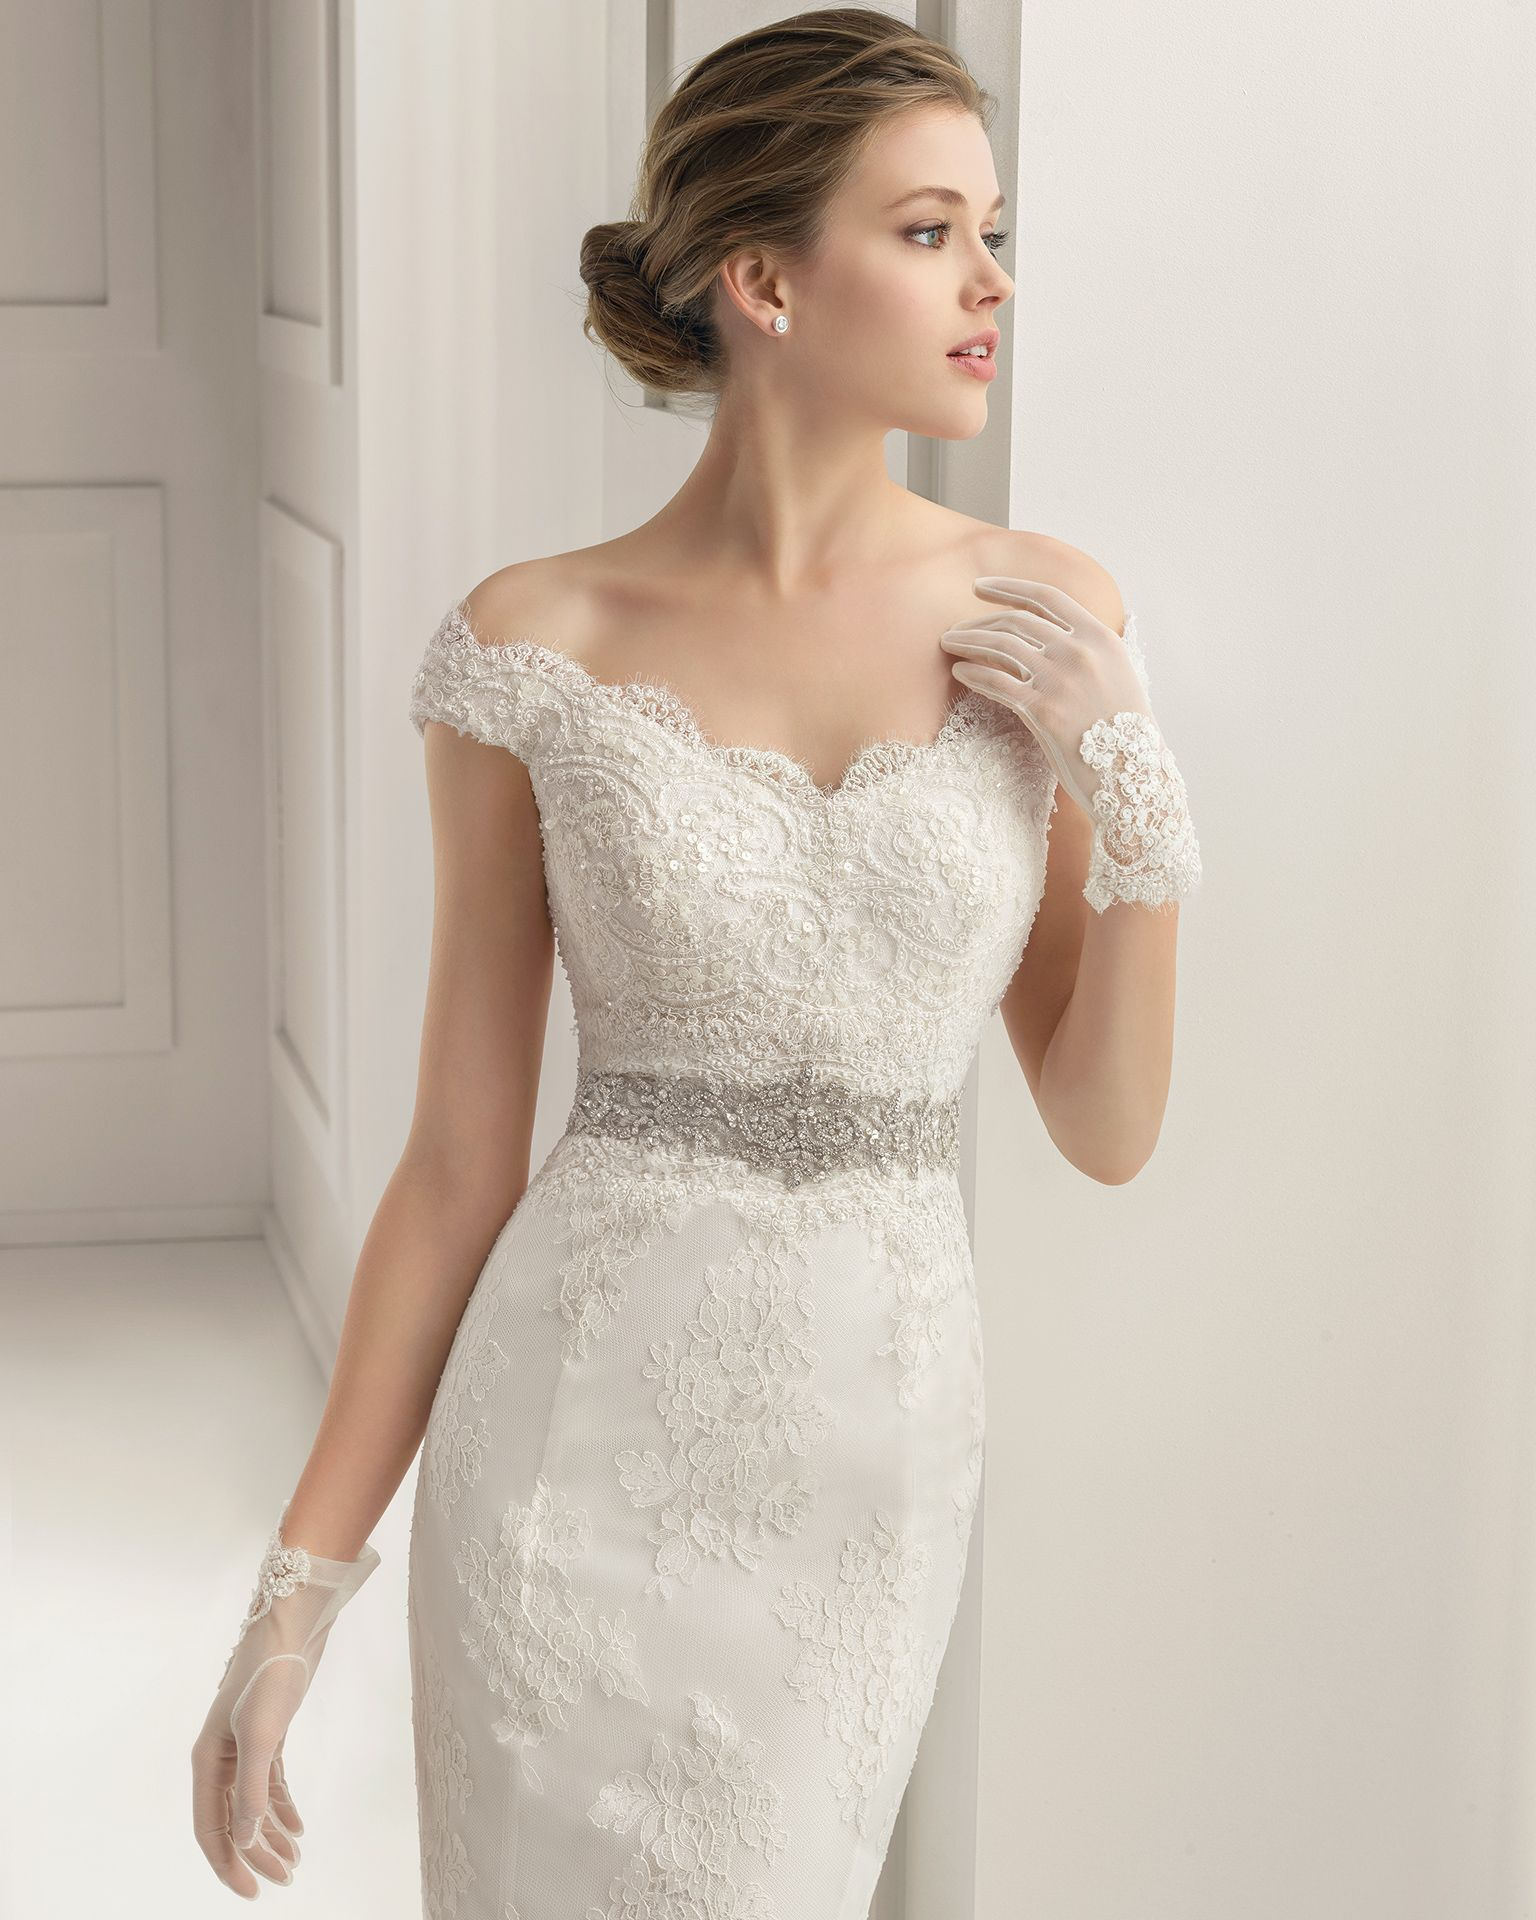 Santel corded lace dress with lace and beading in a natural colour